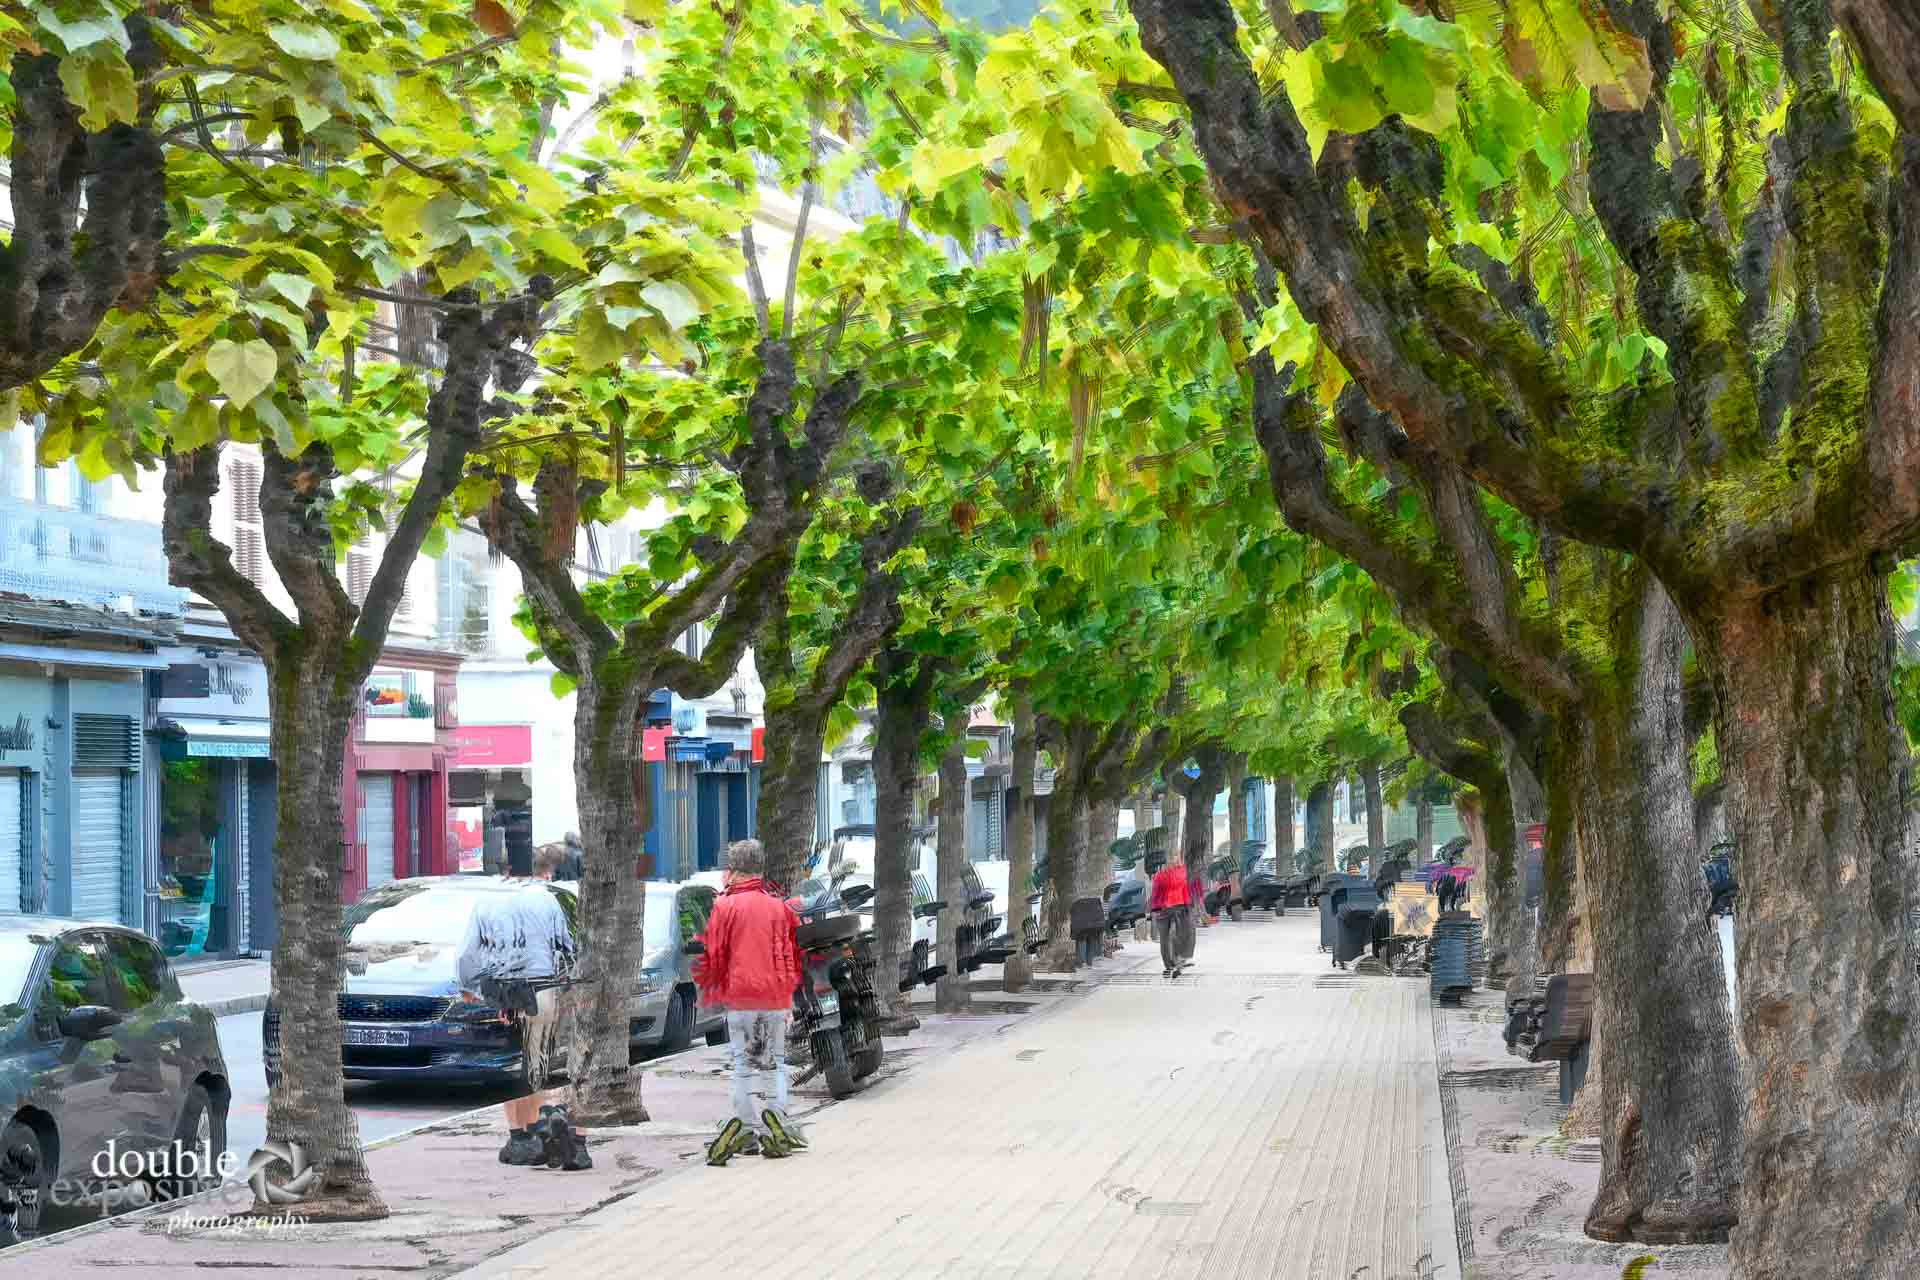 A street in Vienne, France, lined with plane trees.